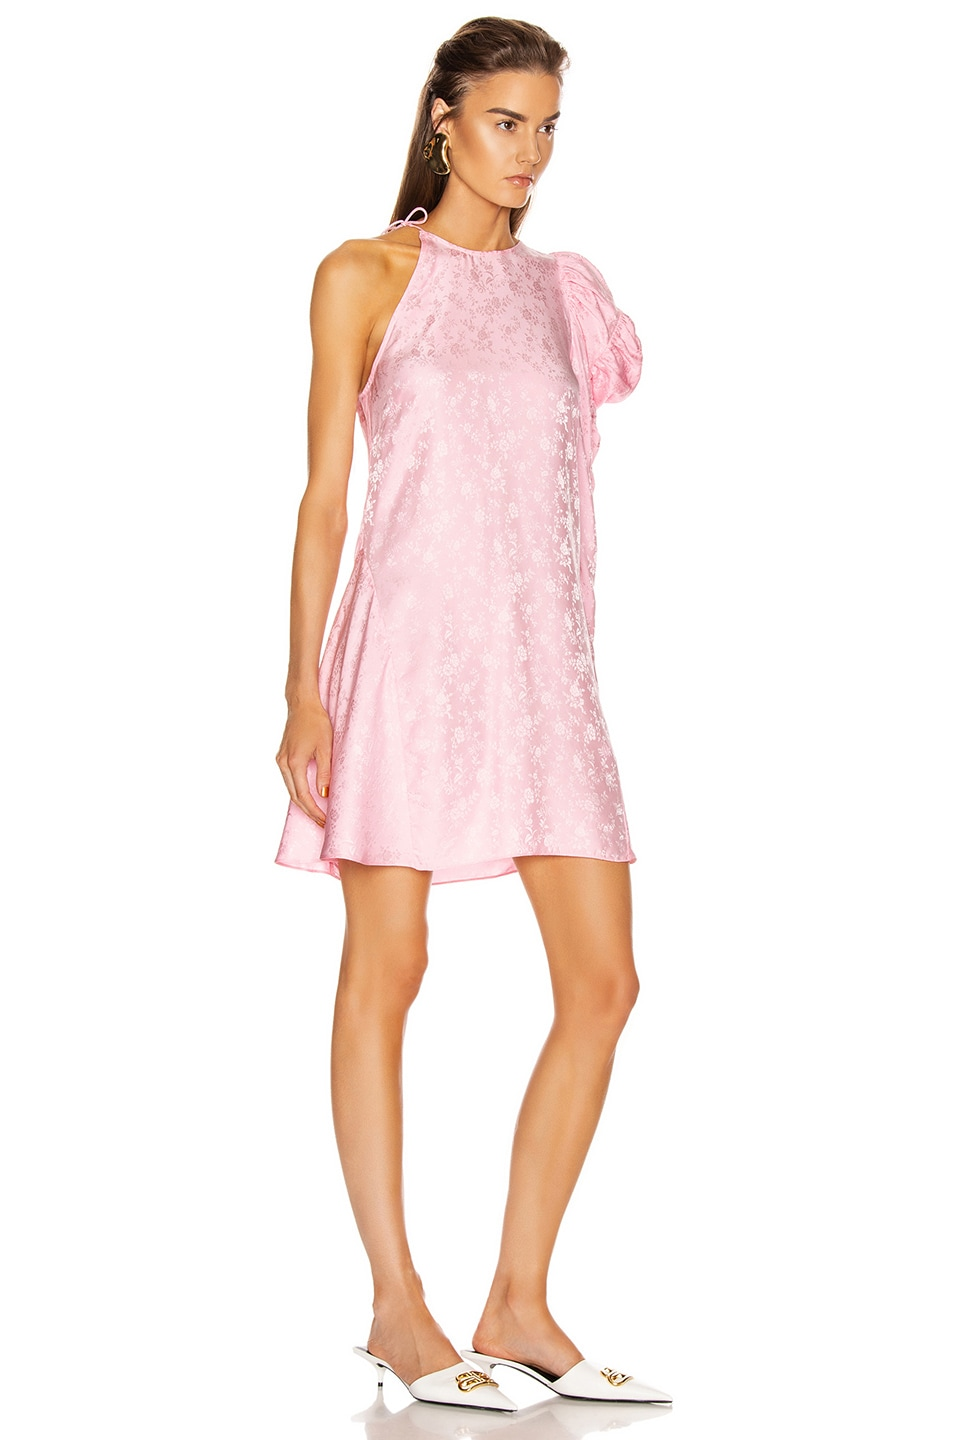 Image 2 of Les Reveries x FWRD Asymmetrical Puff Sleeve Dress in Rose Pink